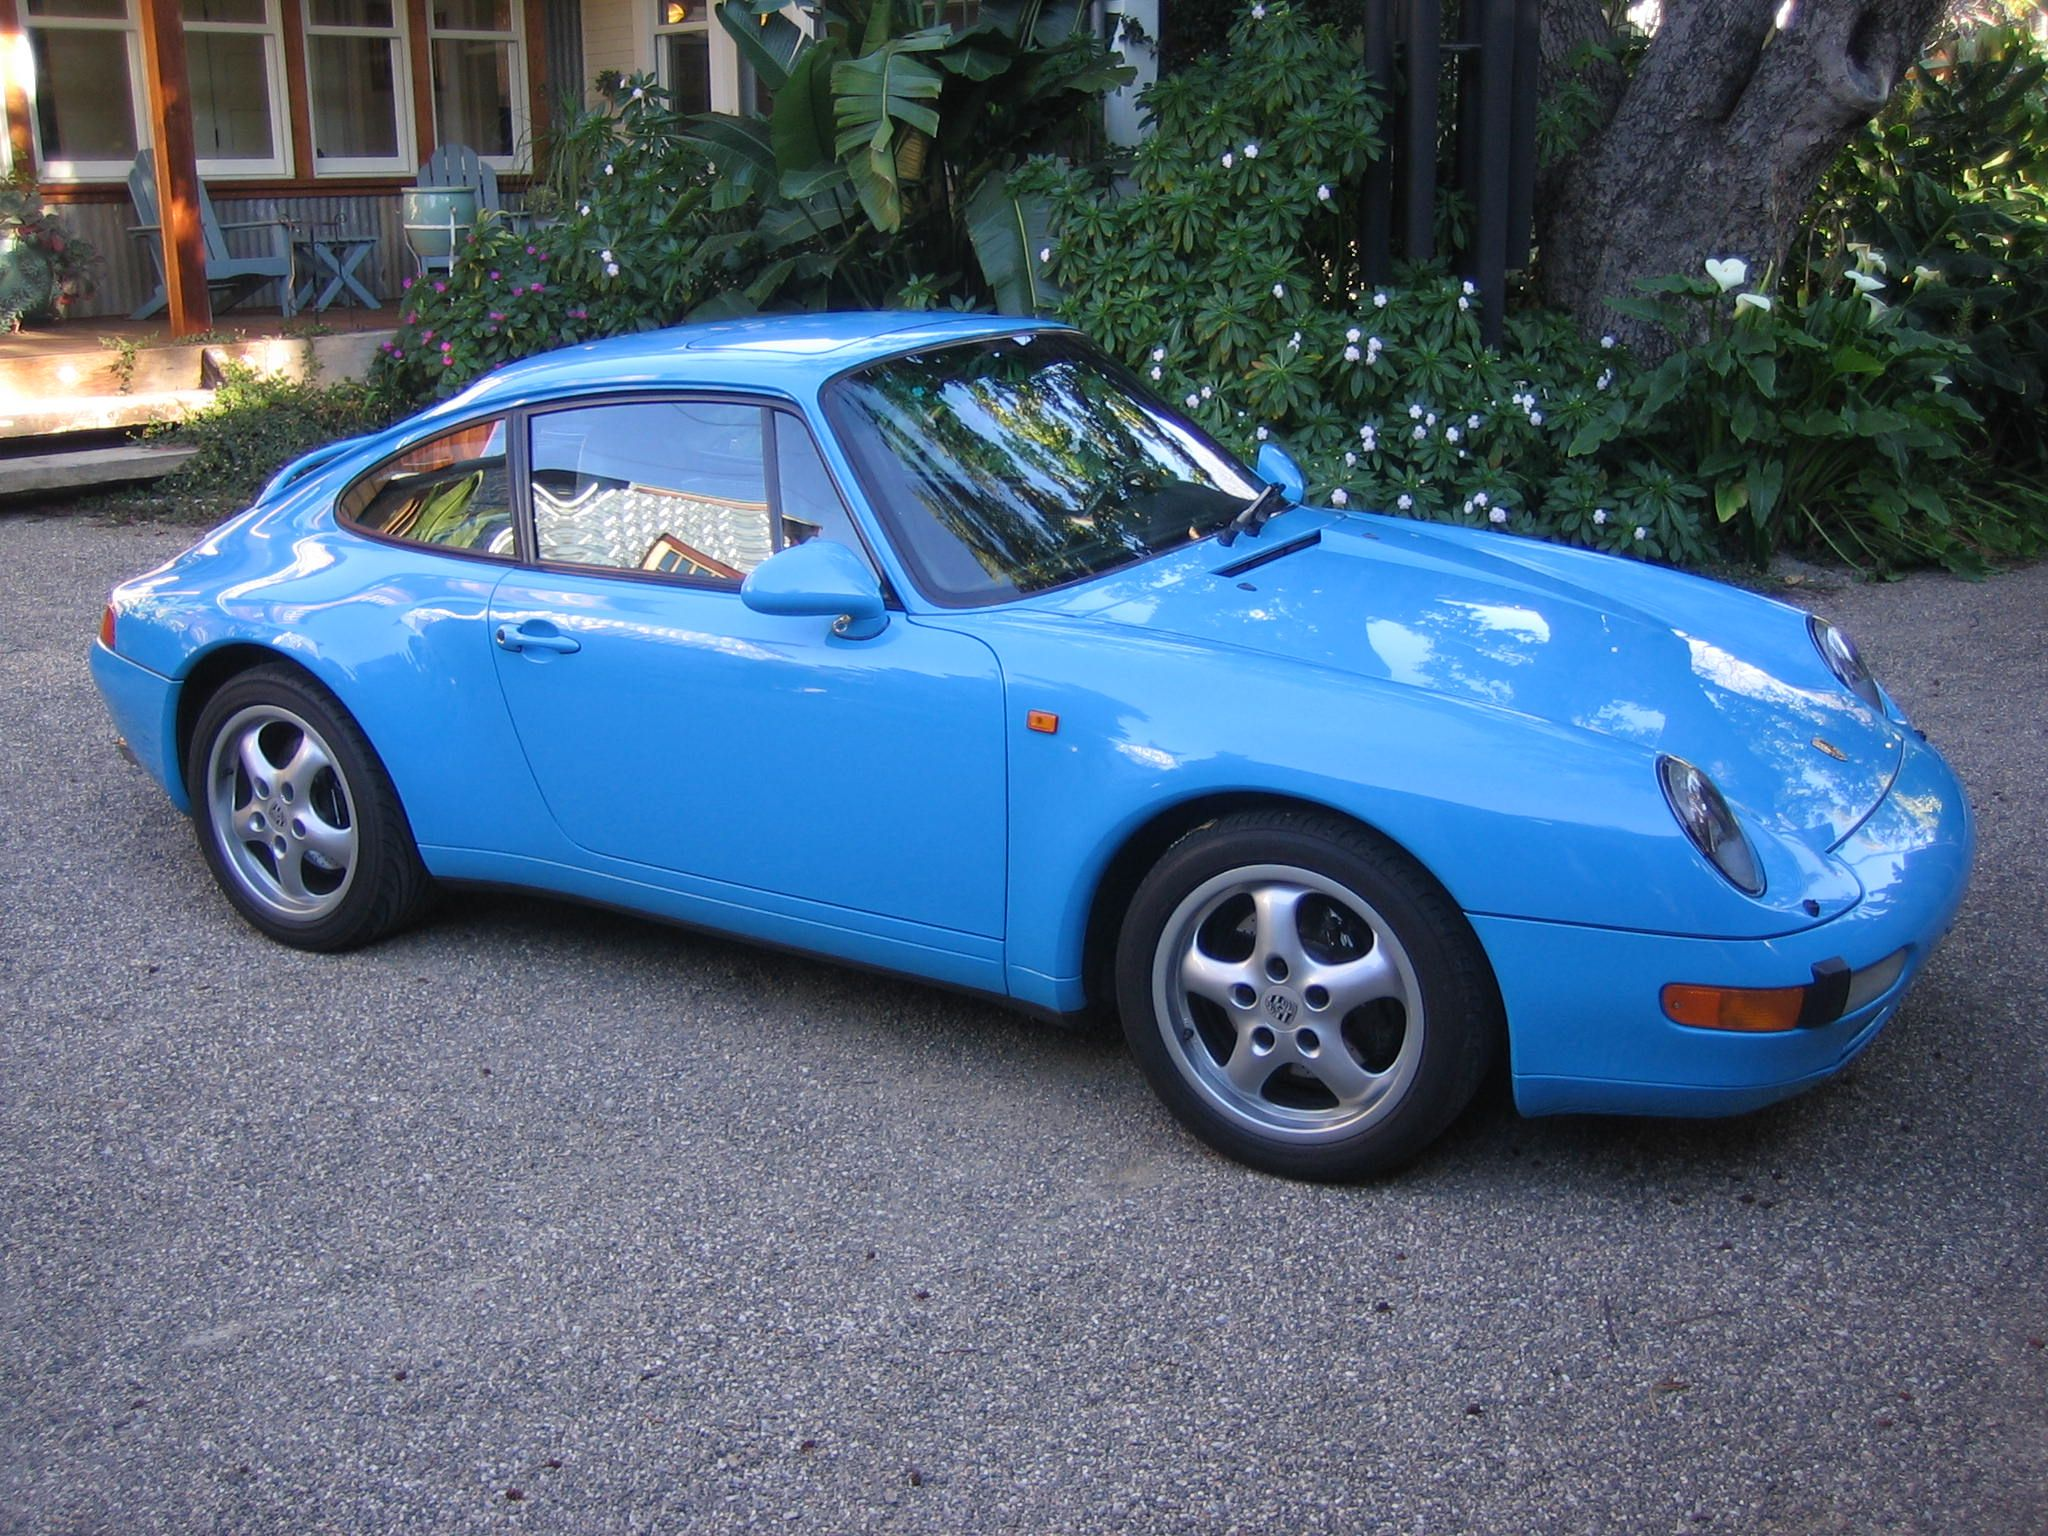 1995 Porsche 993 Riviera Blue  VIN ... 0087... one of the first 5 993's in the USA built in Jan 1994